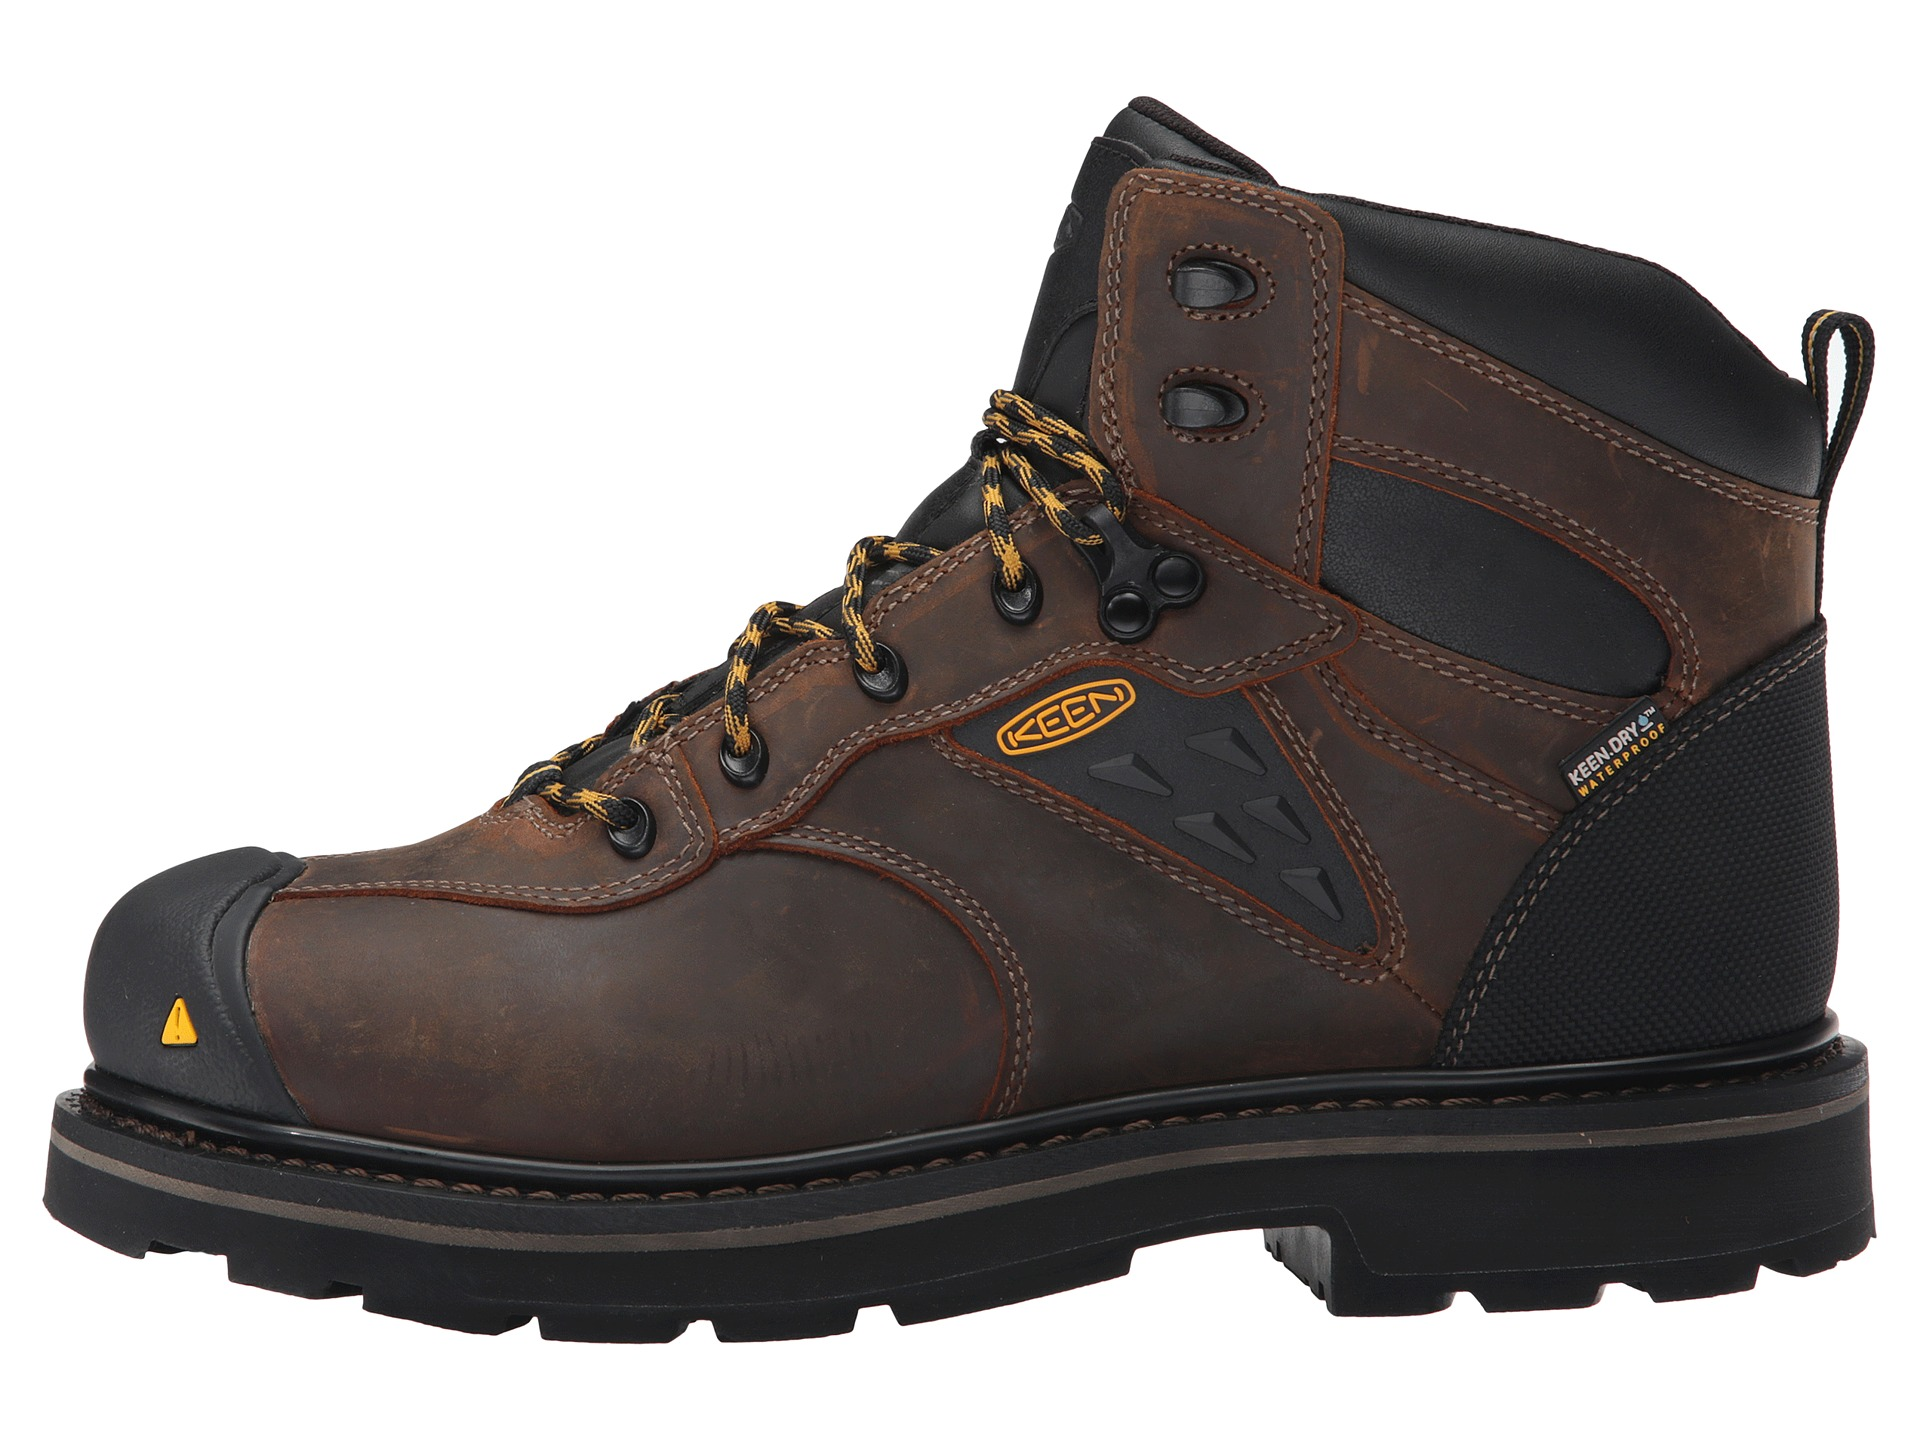 993eb1ca7ab3 keen tacoma steel toe cheap   OFF35% The Largest Catalog Discounts